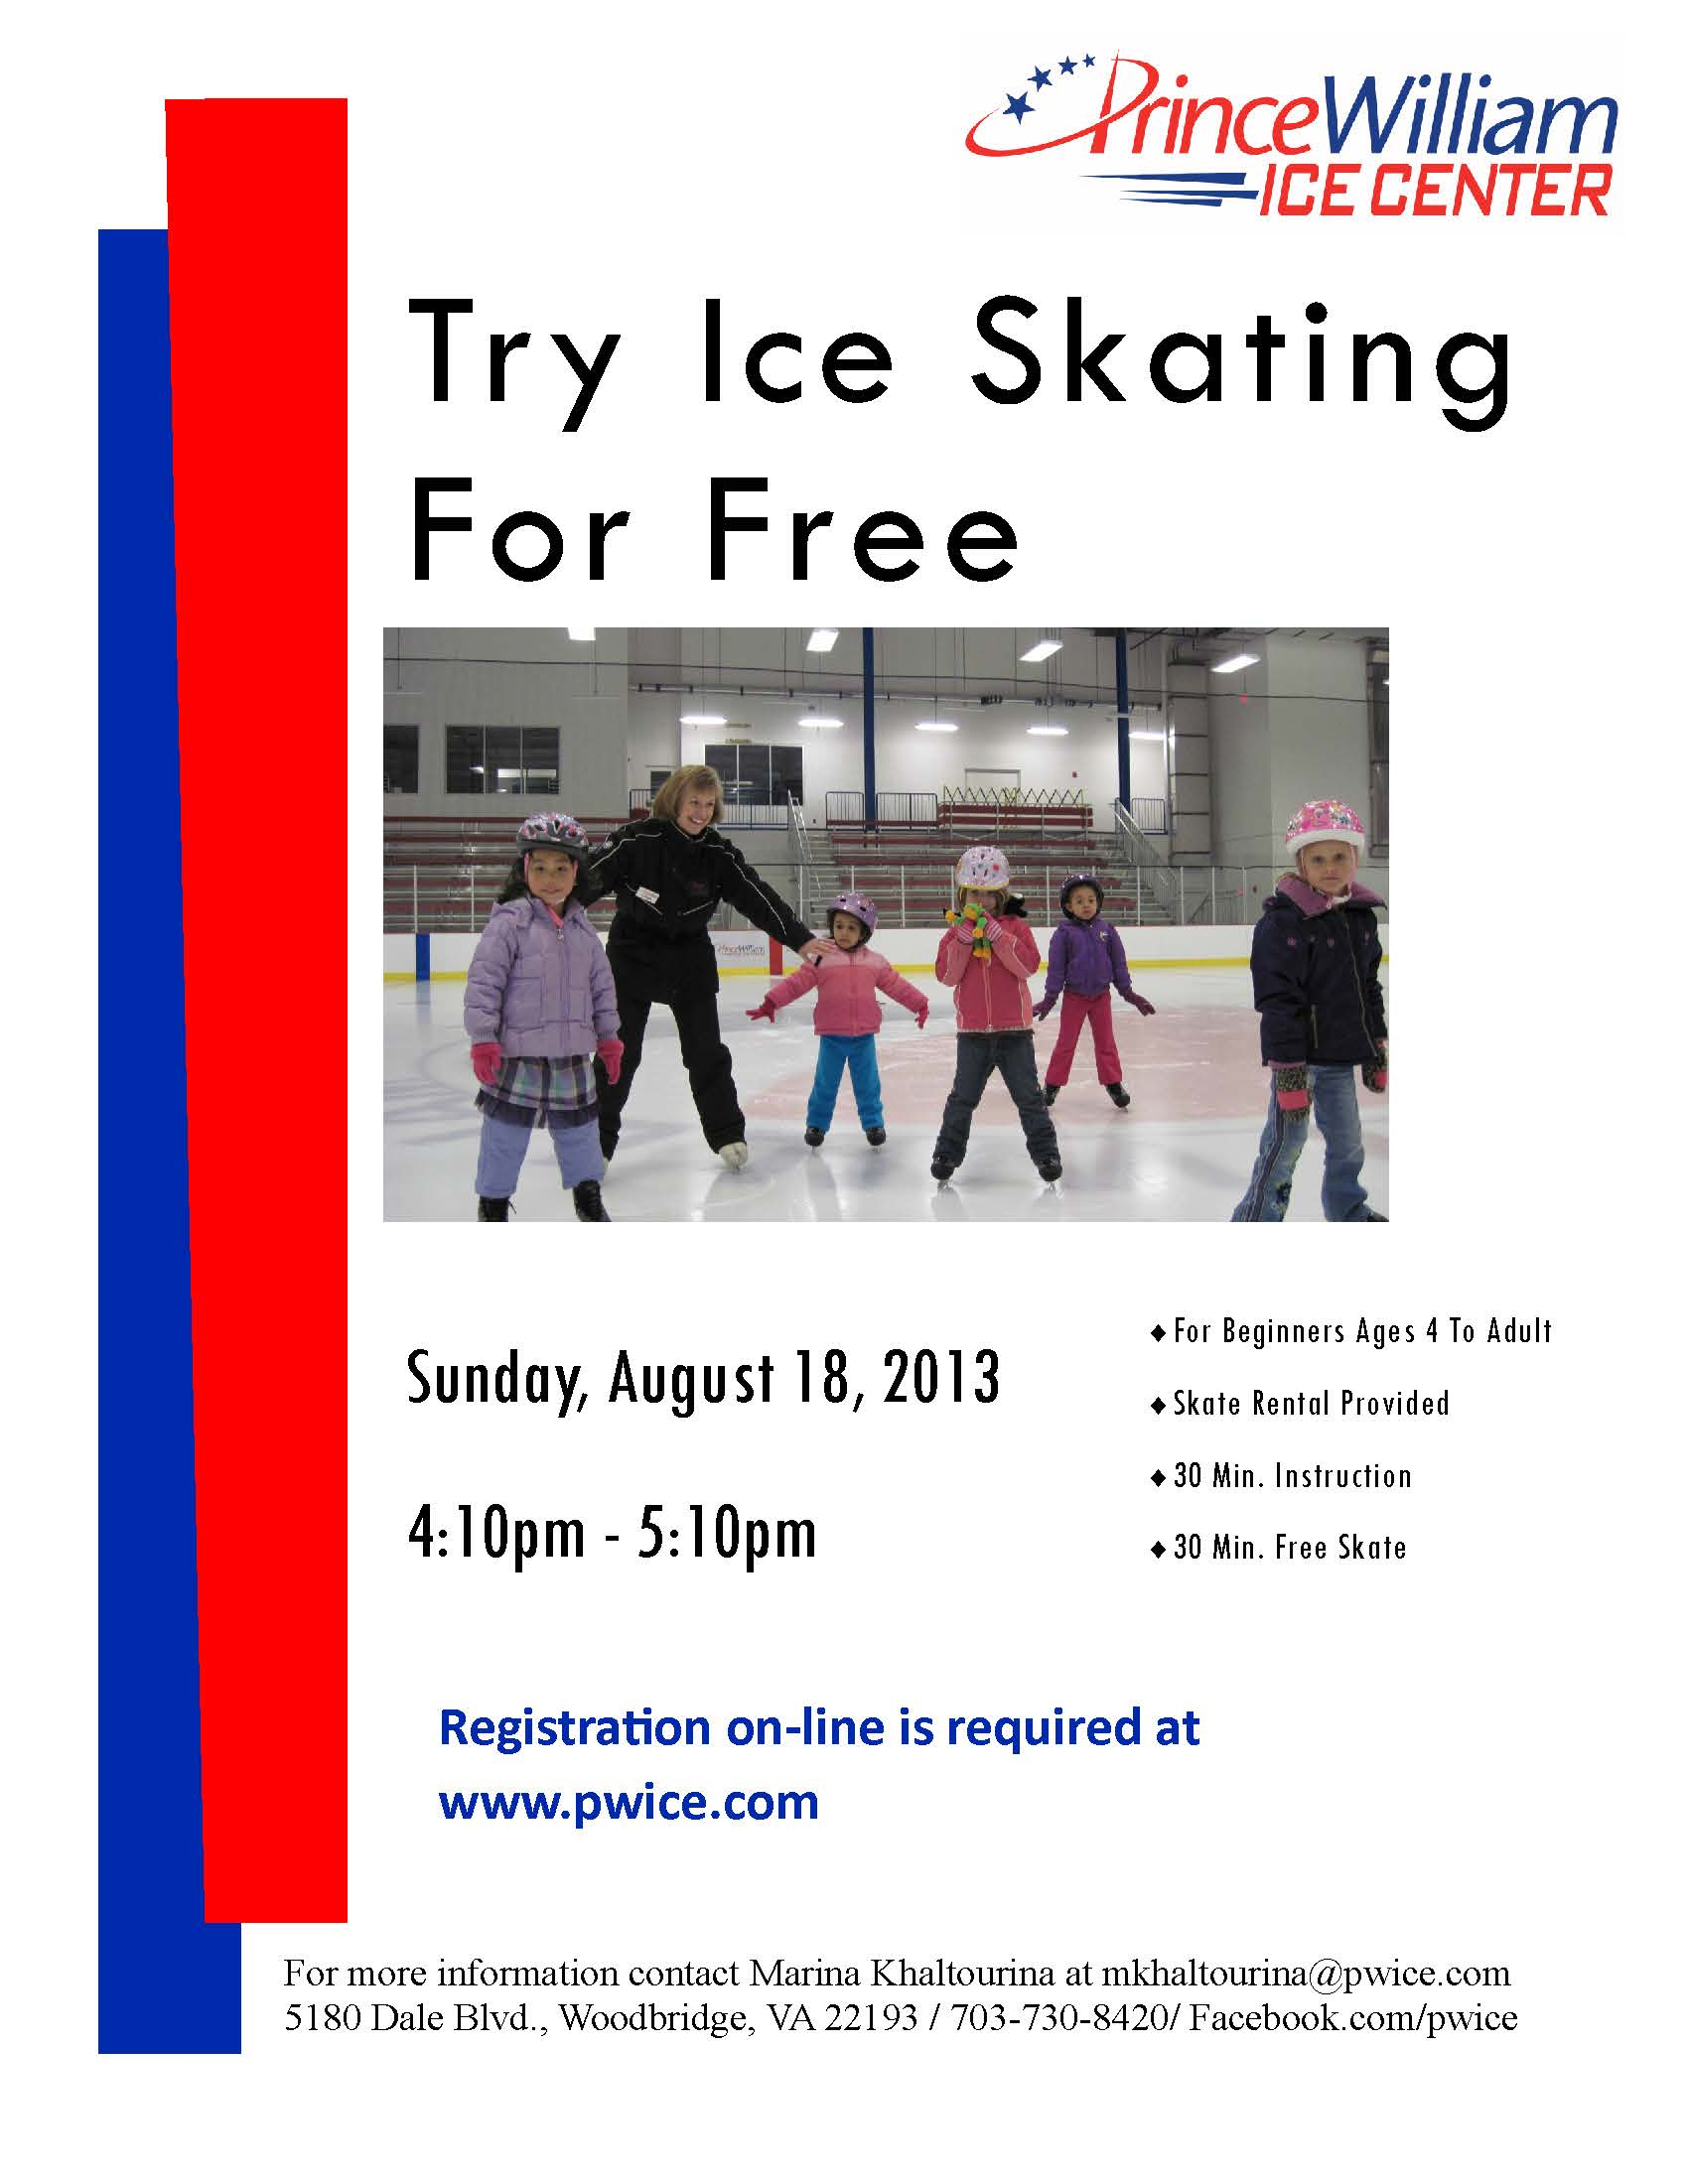 Try Ice Skating For Free August 18, 2013